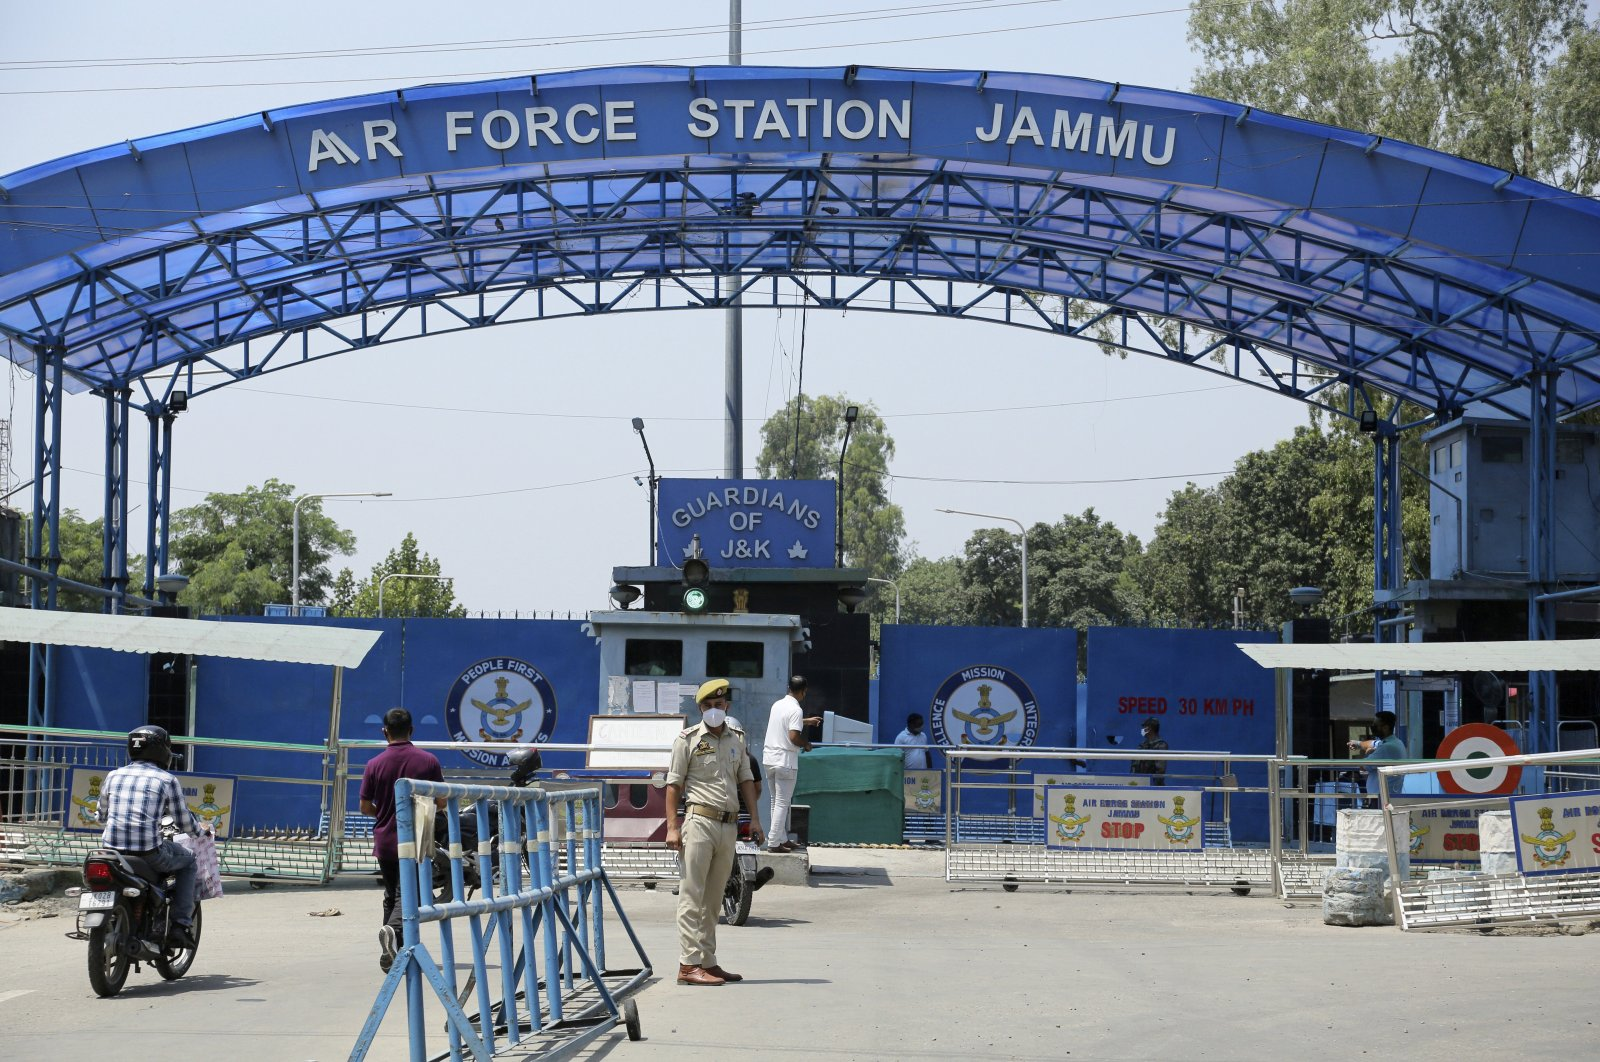 A police officer stands outside the Jammu air force station after two suspected blasts were reported early morning in Jammu, India, June 27, 2021. (AP Photo)